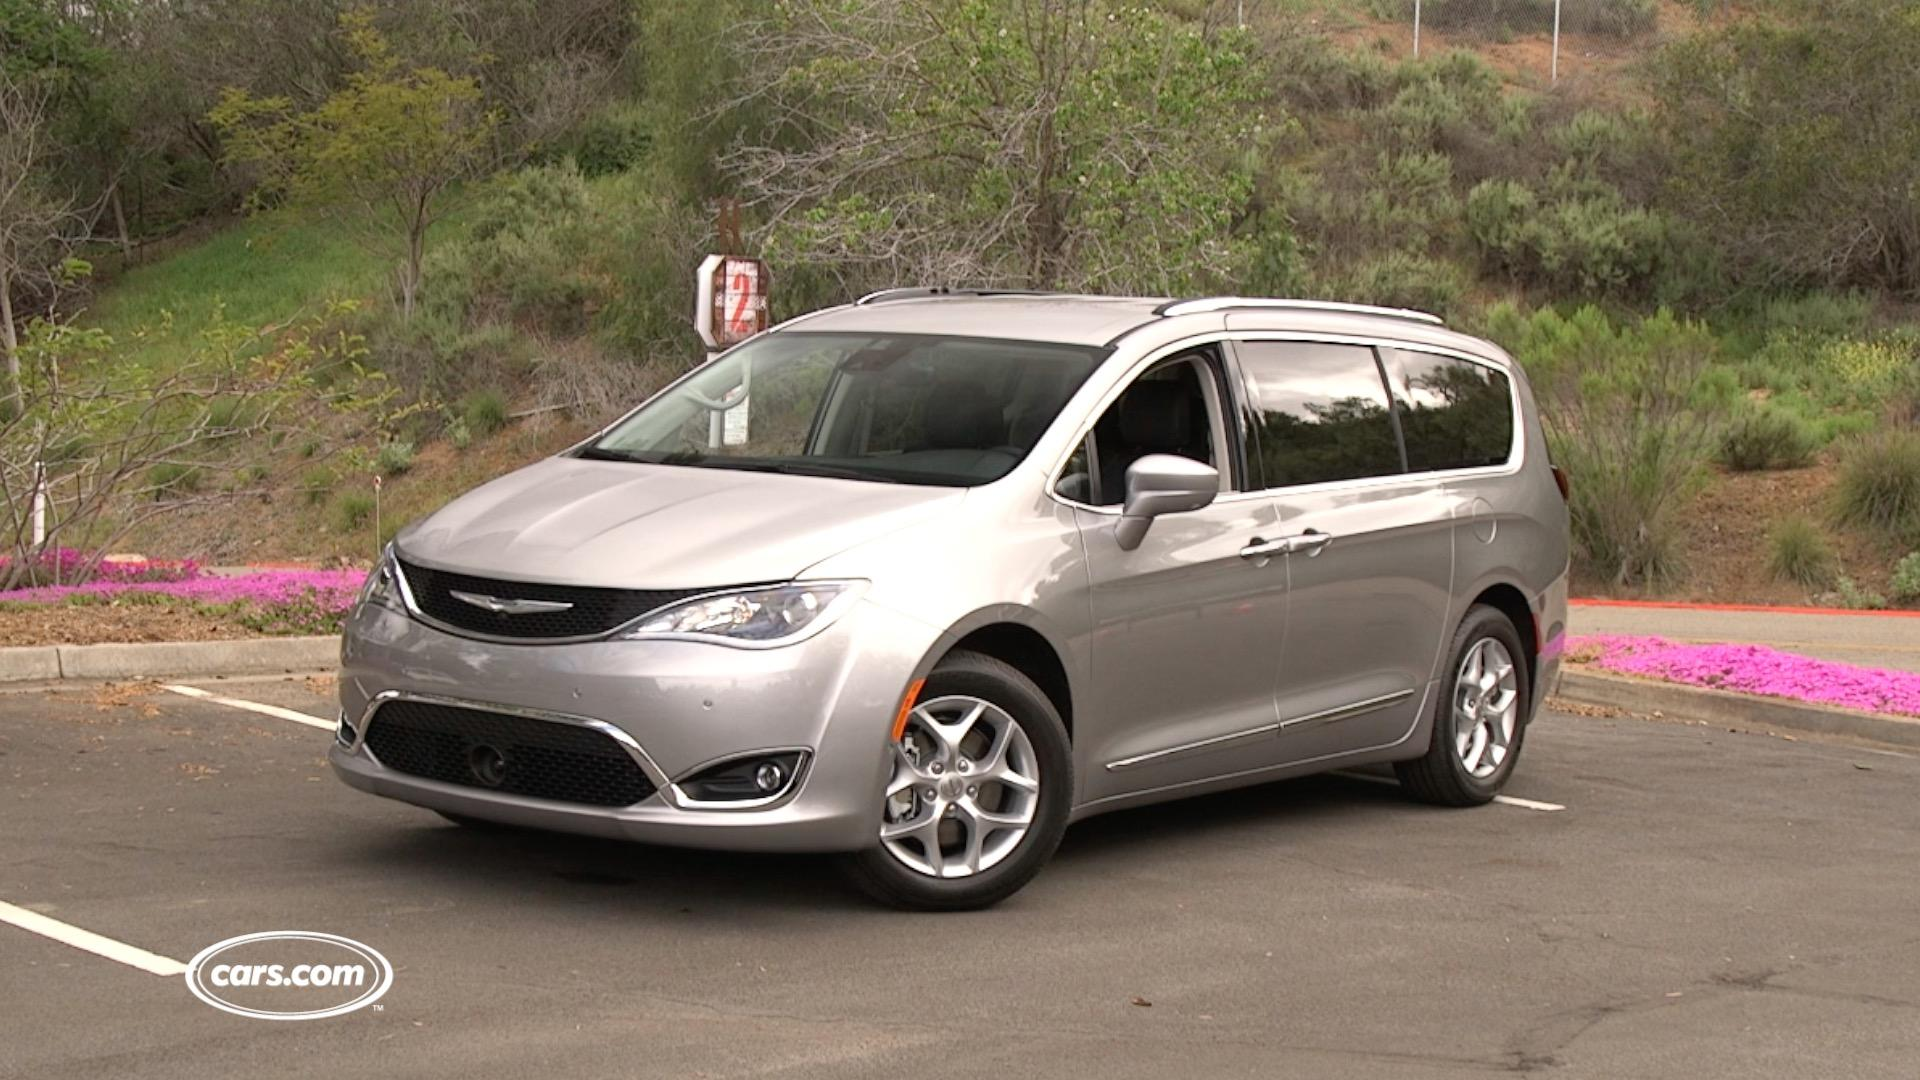 2017 chrysler pacifica review video. Black Bedroom Furniture Sets. Home Design Ideas